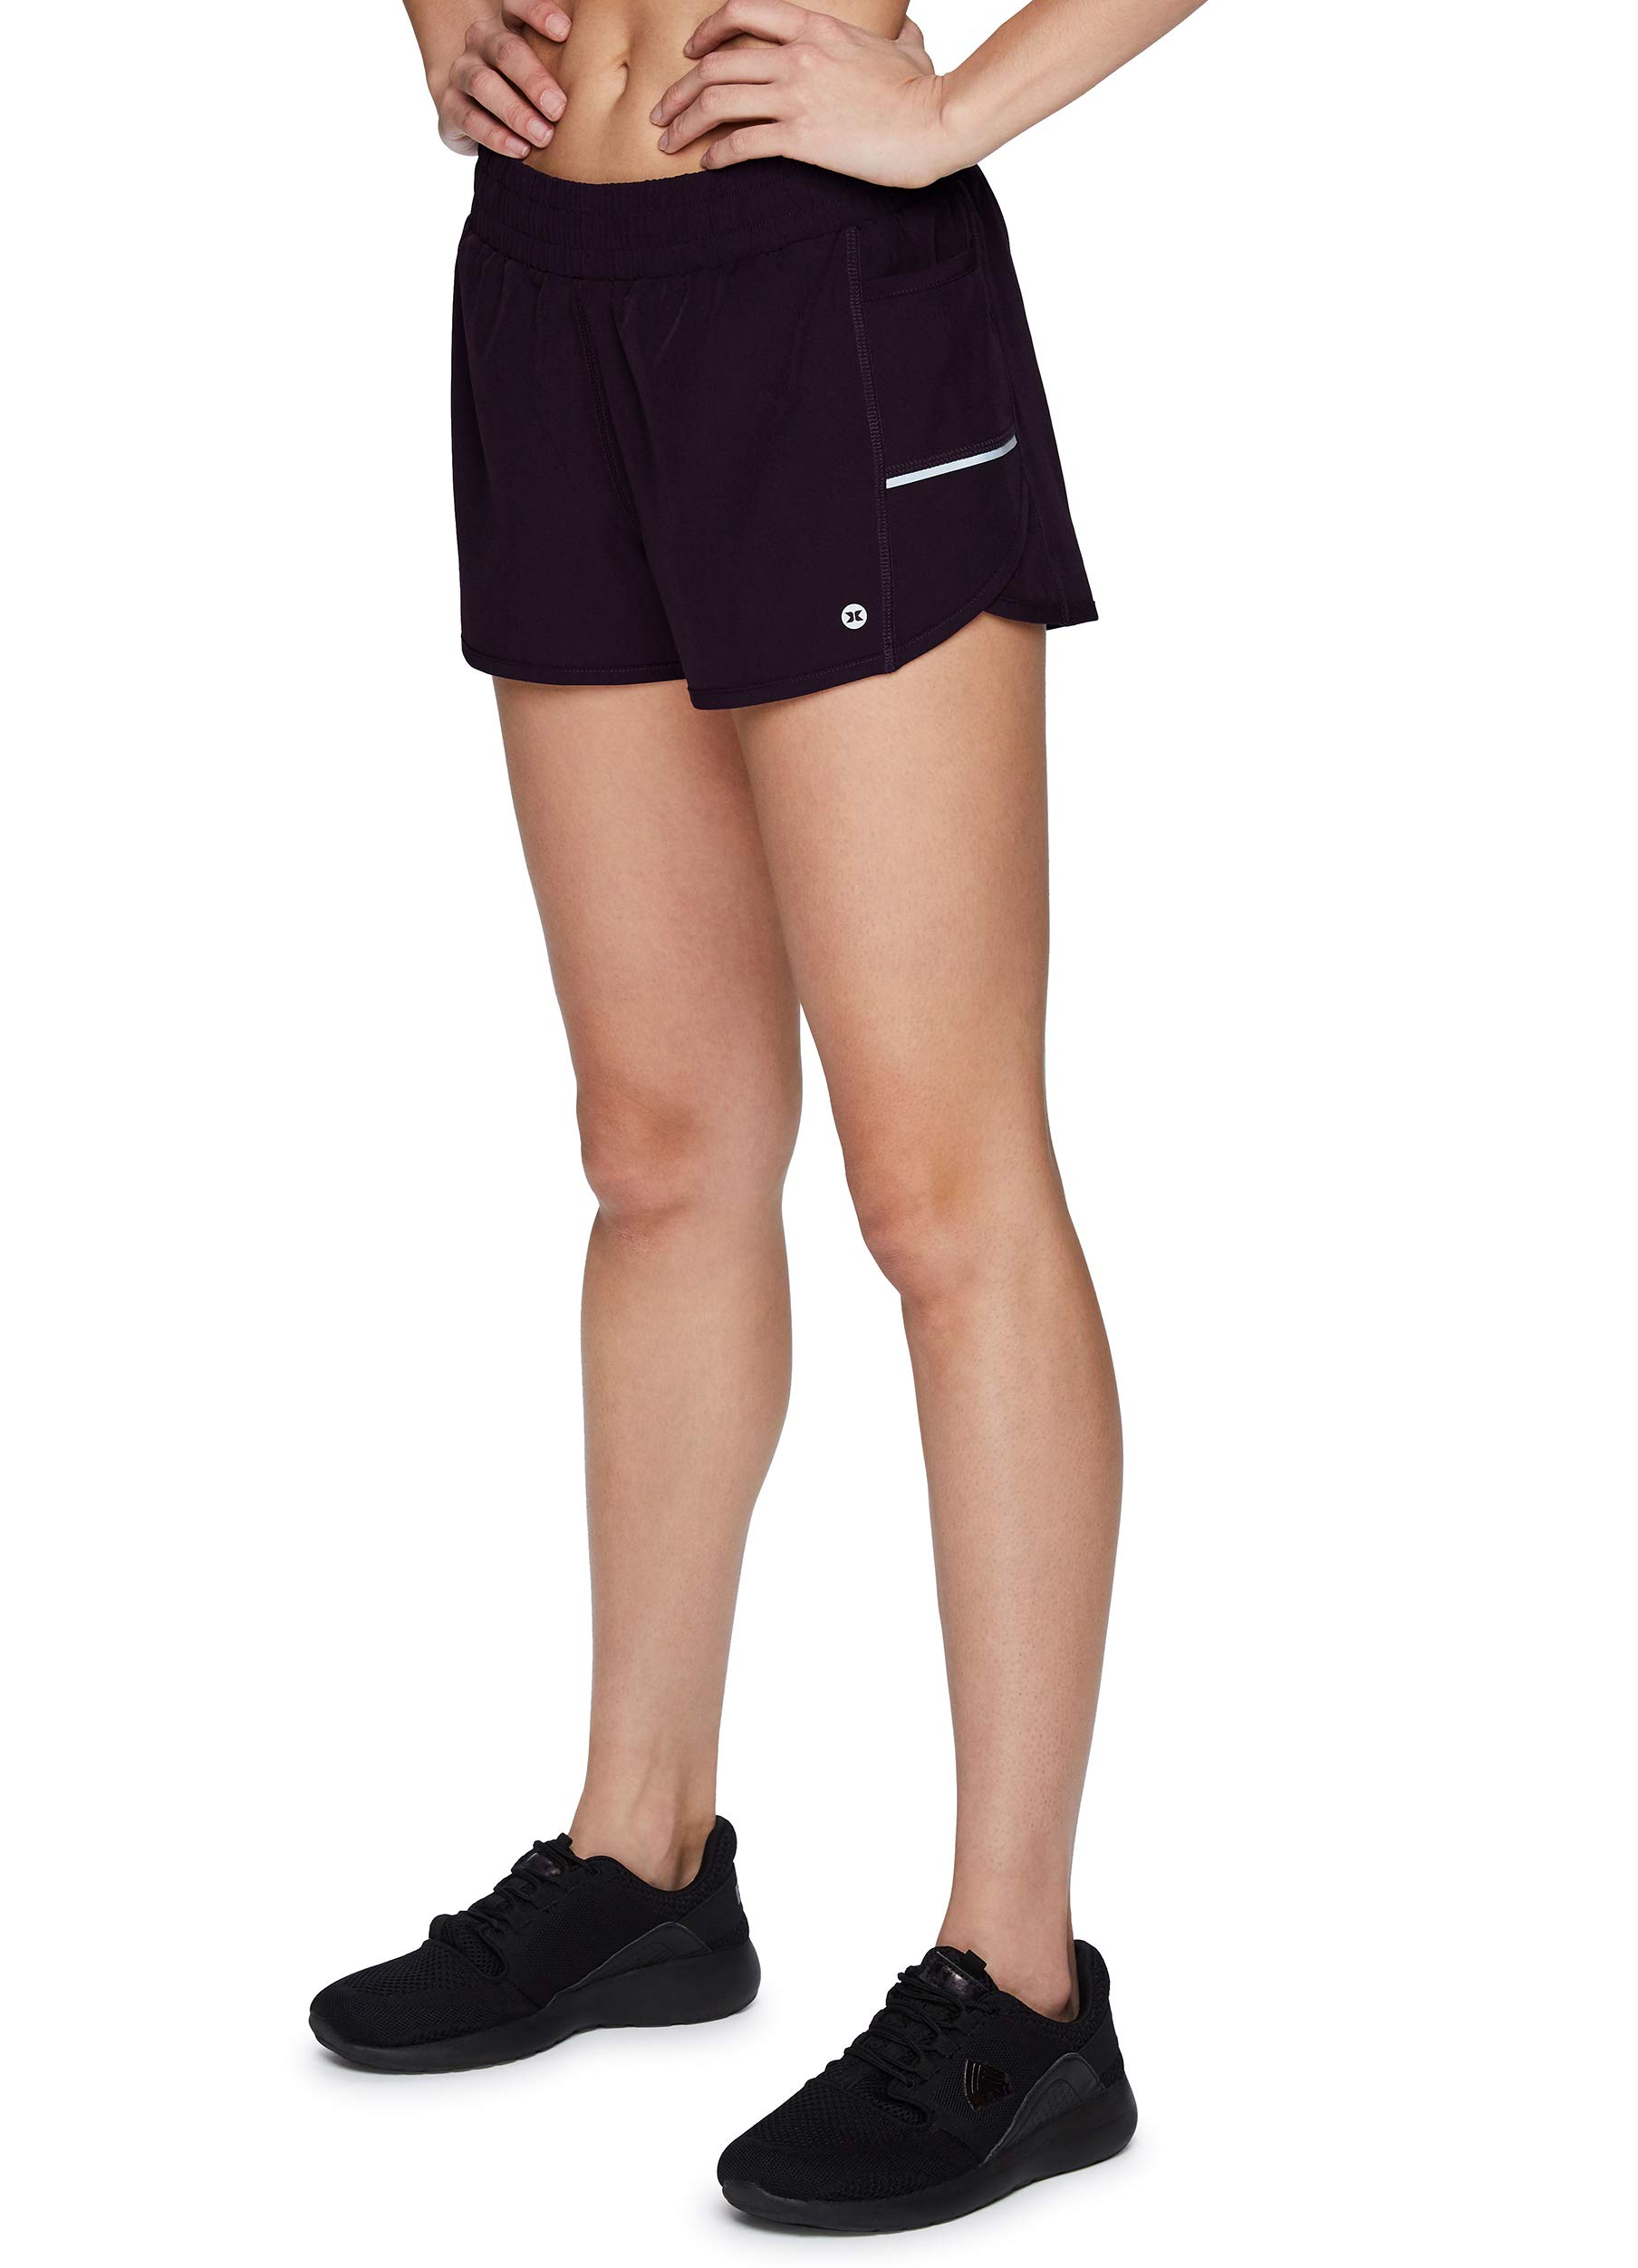 RBX Active Women's Athletic Relaxed Fit Quick Dry Stretch Woven Running Short with Inner Attached Brief and Pockets